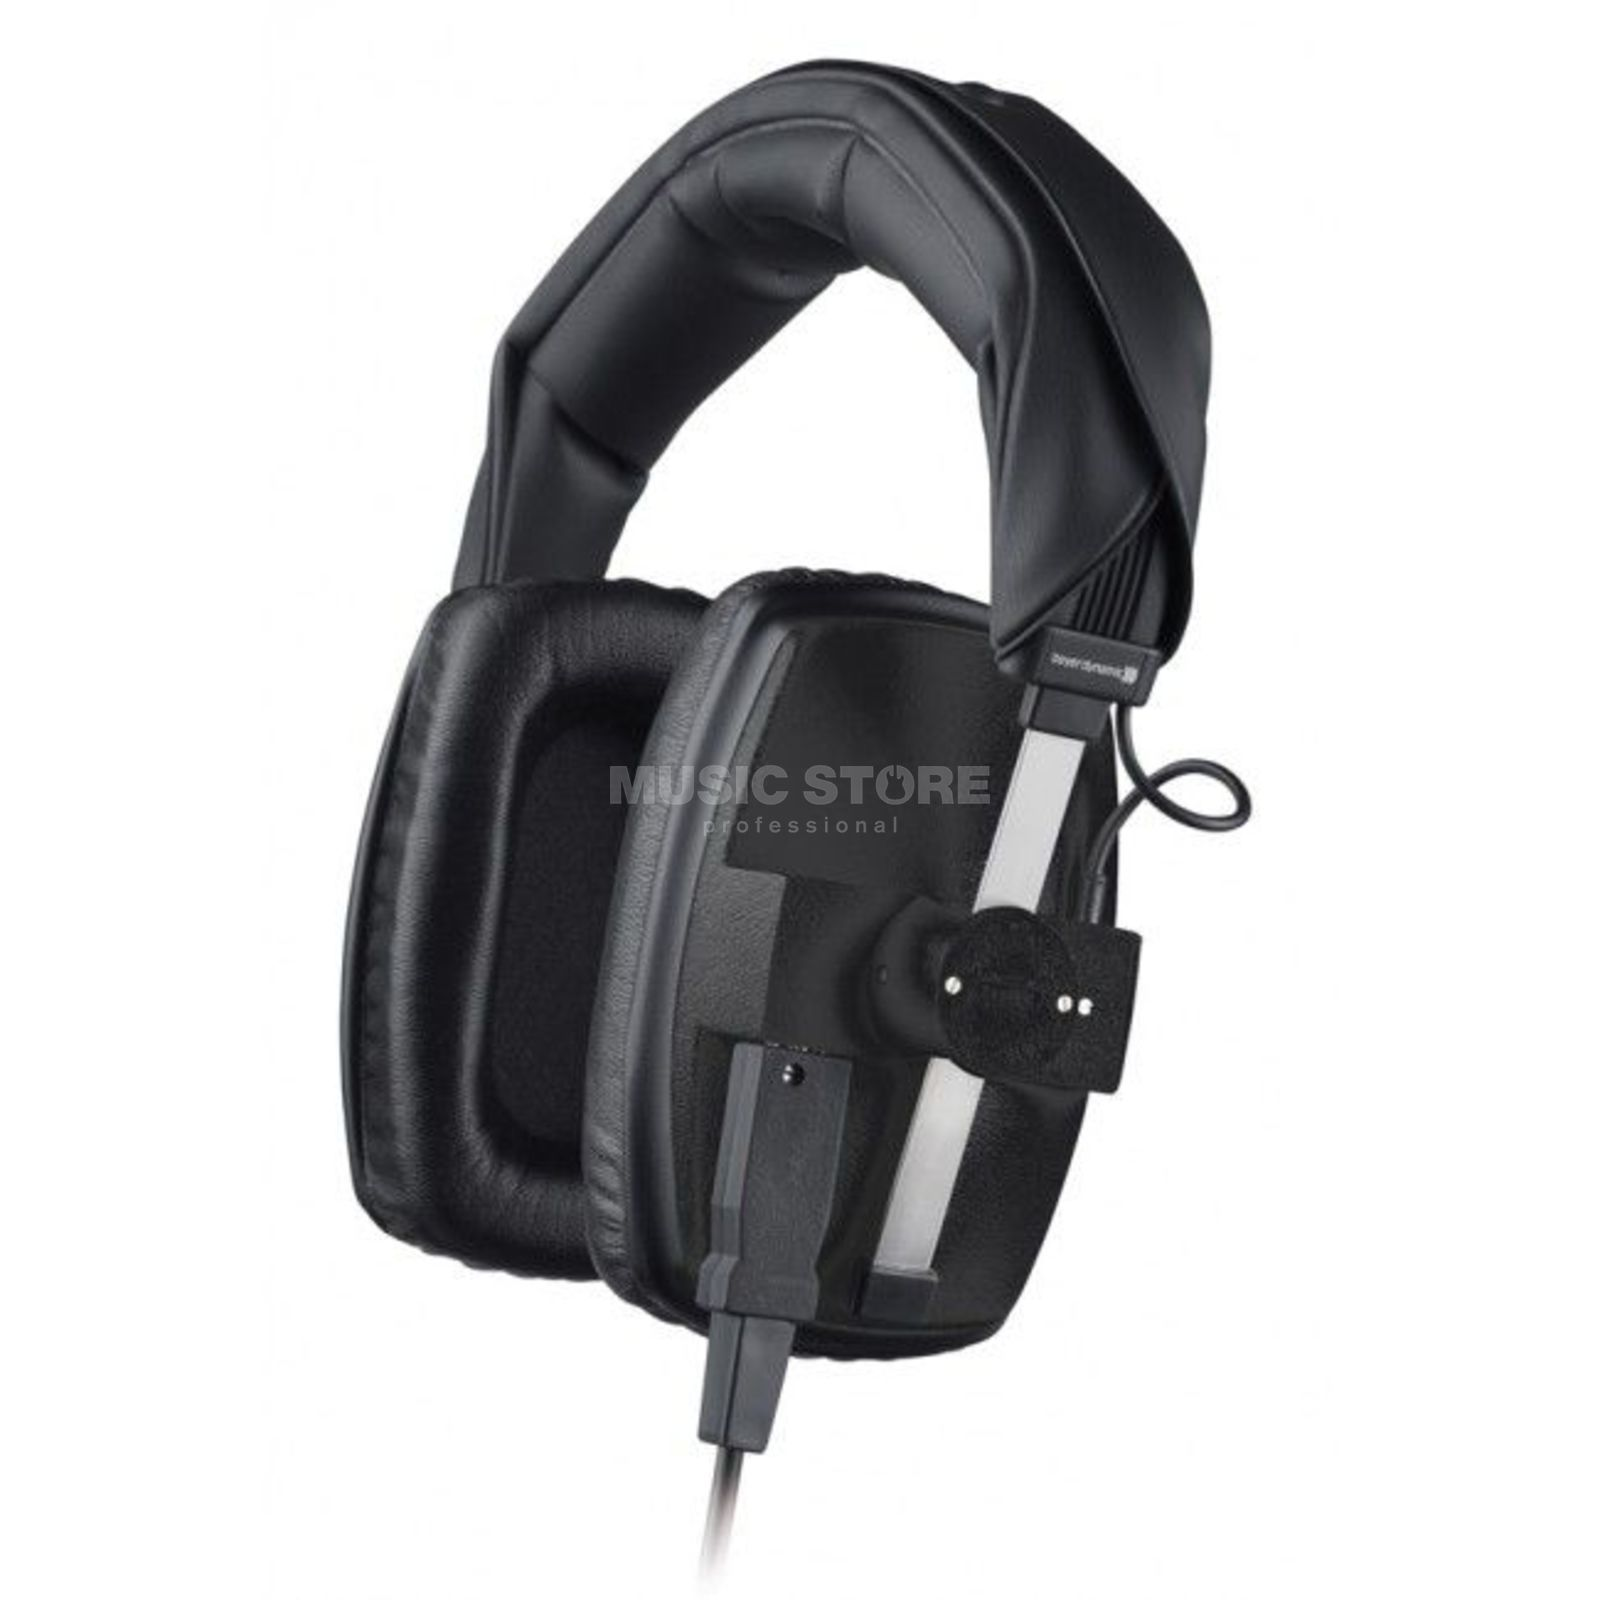 beyerdynamic DT 100 Studio Headphones Black 16 Ohm Product Image